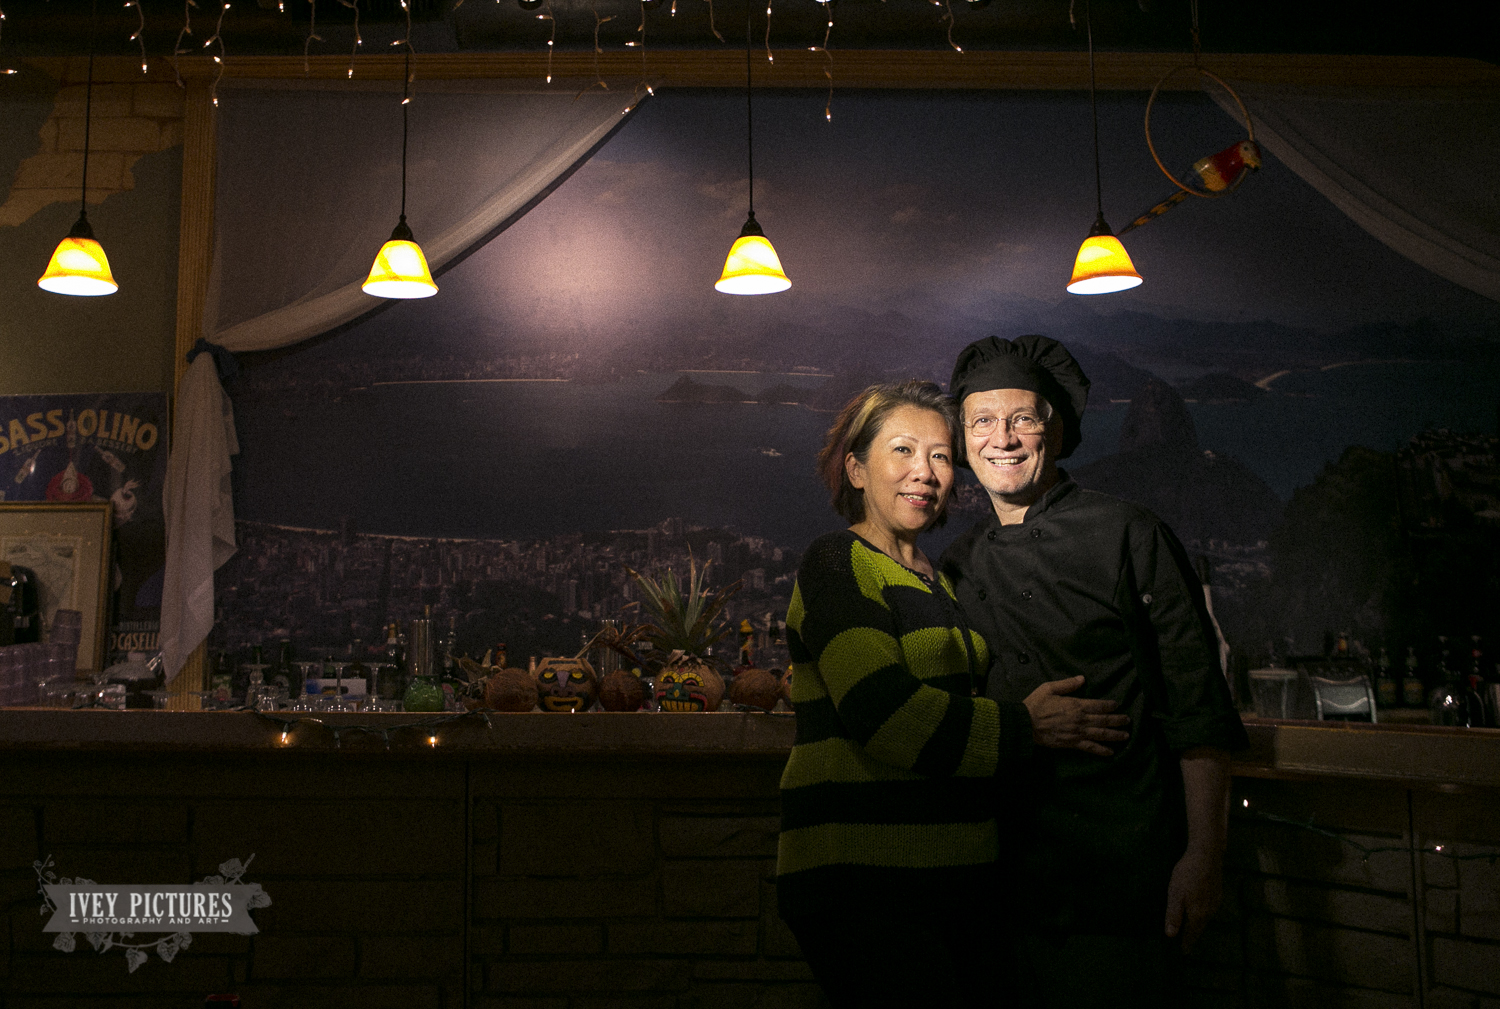 We had a snack at Brasileirissimo Restaurant and Cafe Sol. The food and hot chocolate were amazing and the sweet couple that owns it were nice enough to let us shoot a few pictures. So we shot this picture for them! - Try it out next time you're in St. Augustine. 8 Aviles Street.—